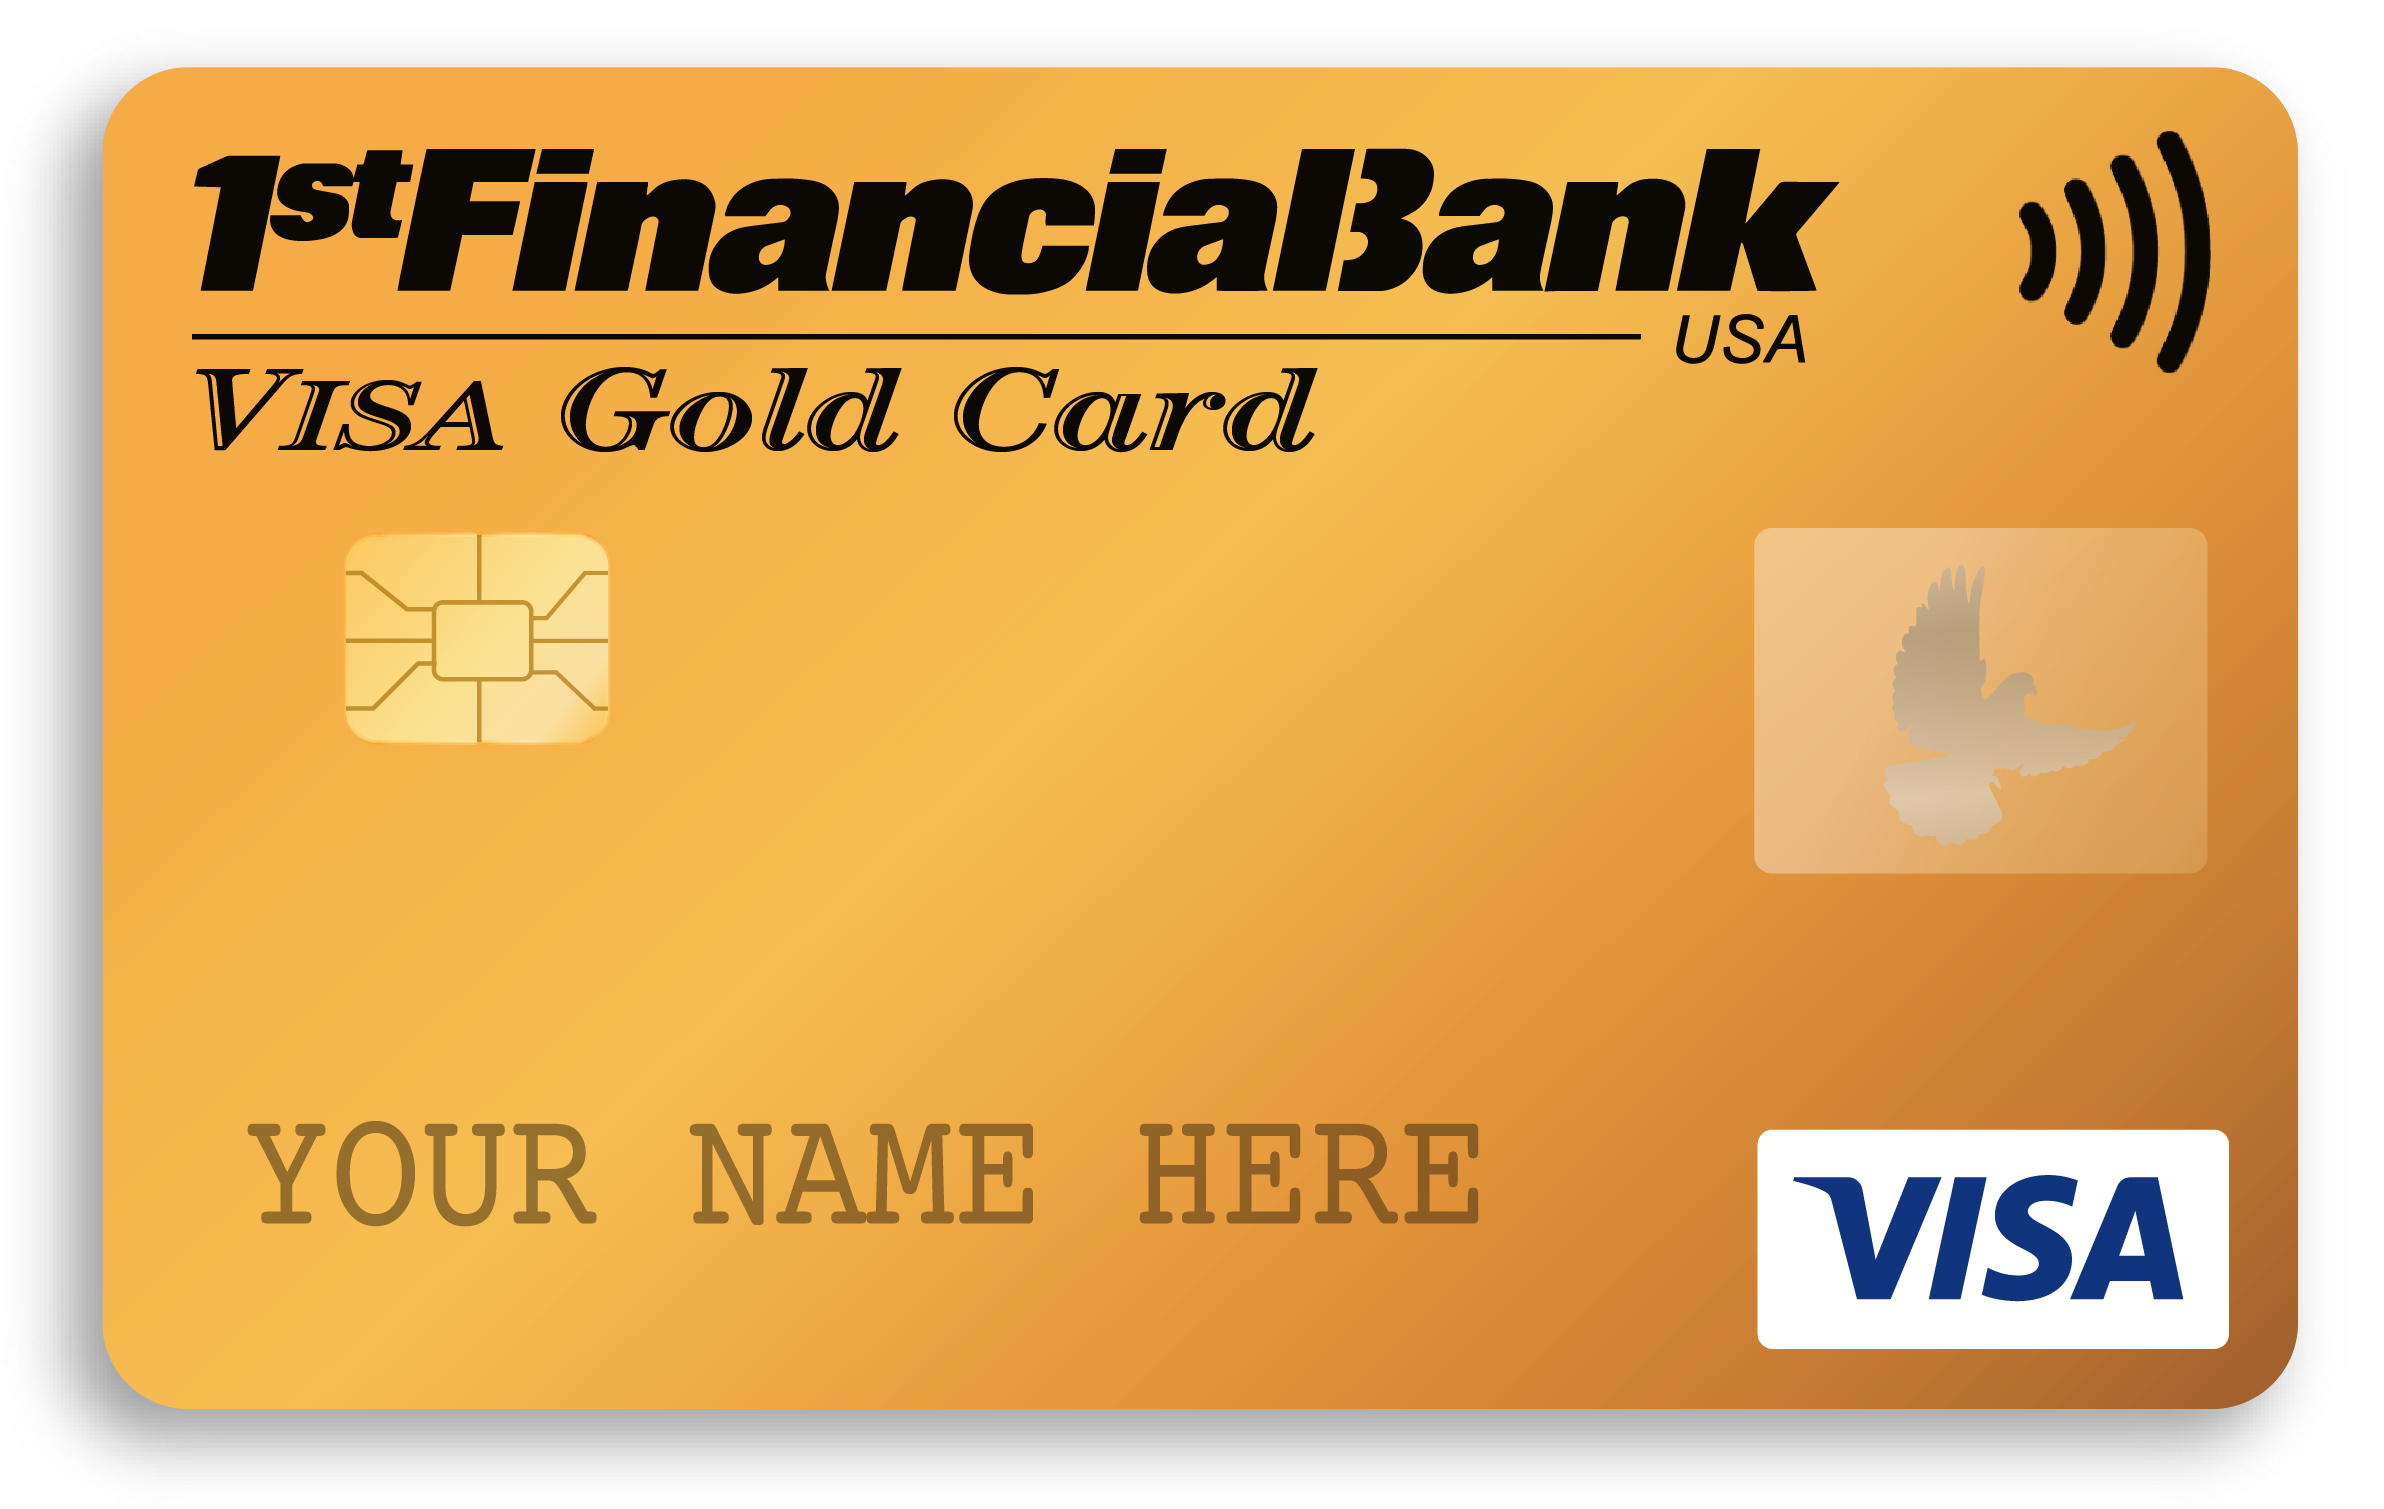 1st Financial Bank USA credit card apply now